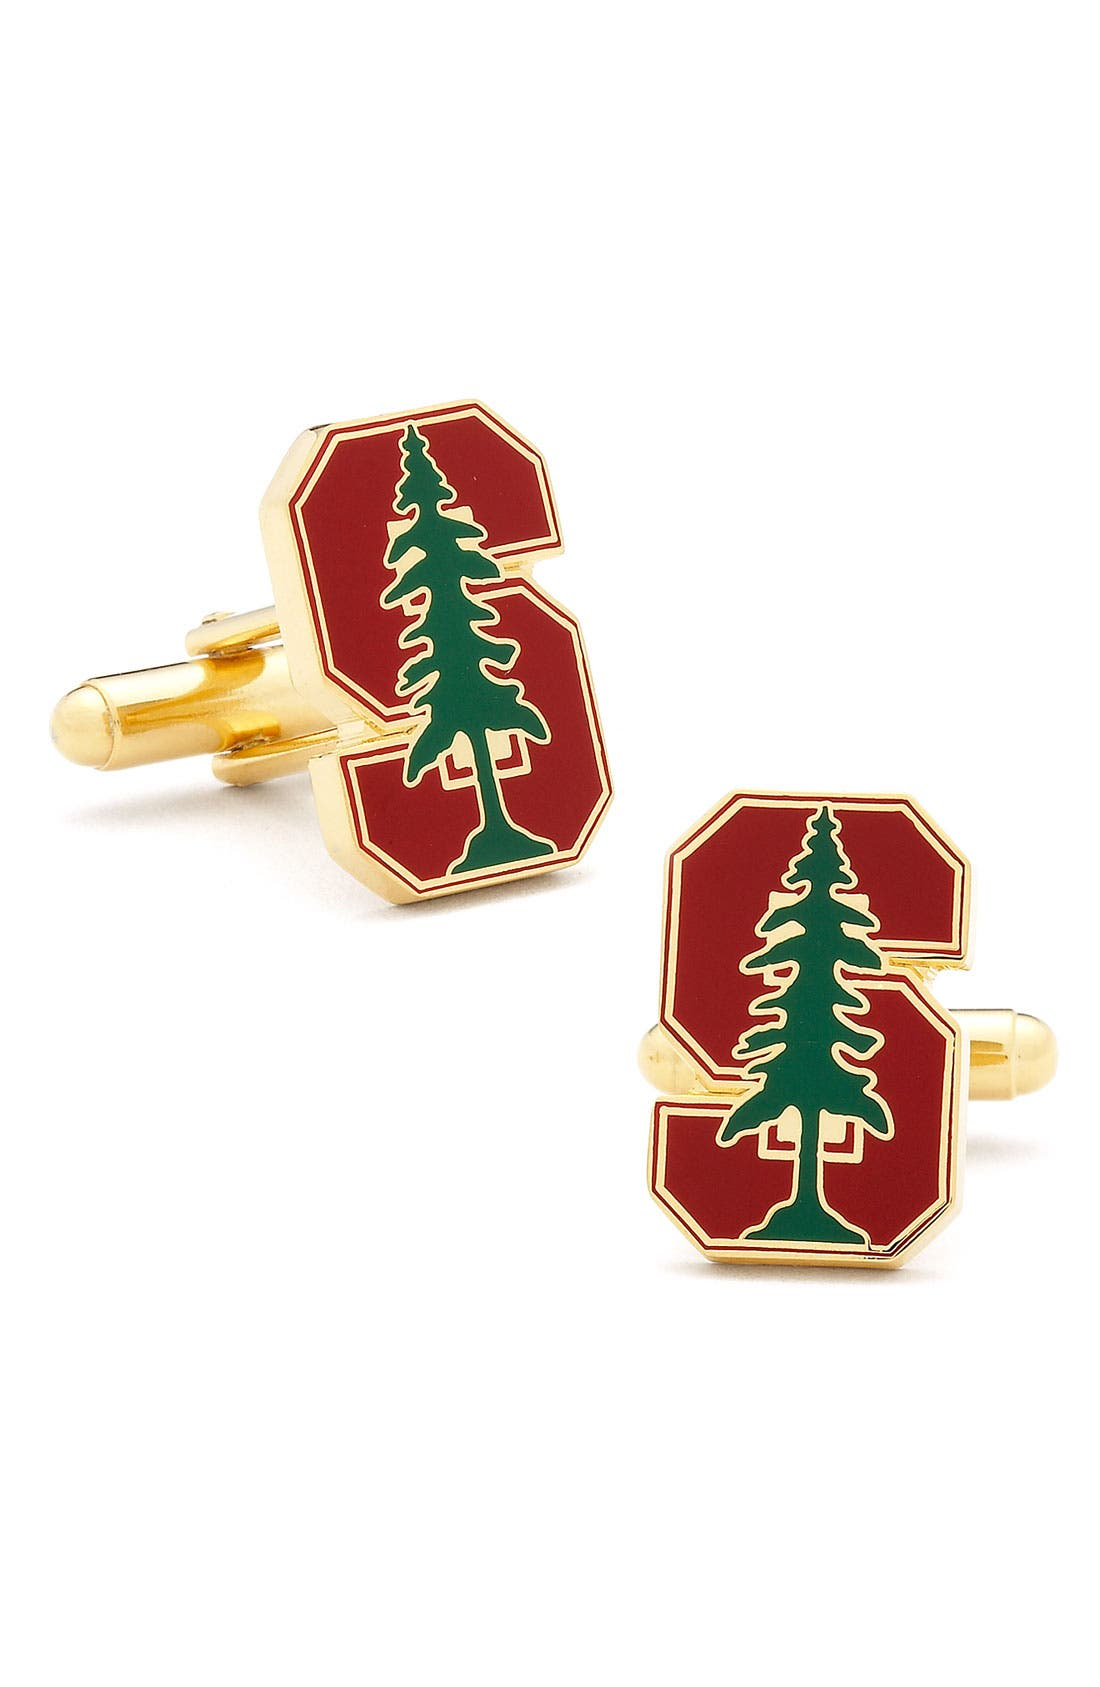 CUFFLINKS, INC. Stanford Cardinal Cuff Links